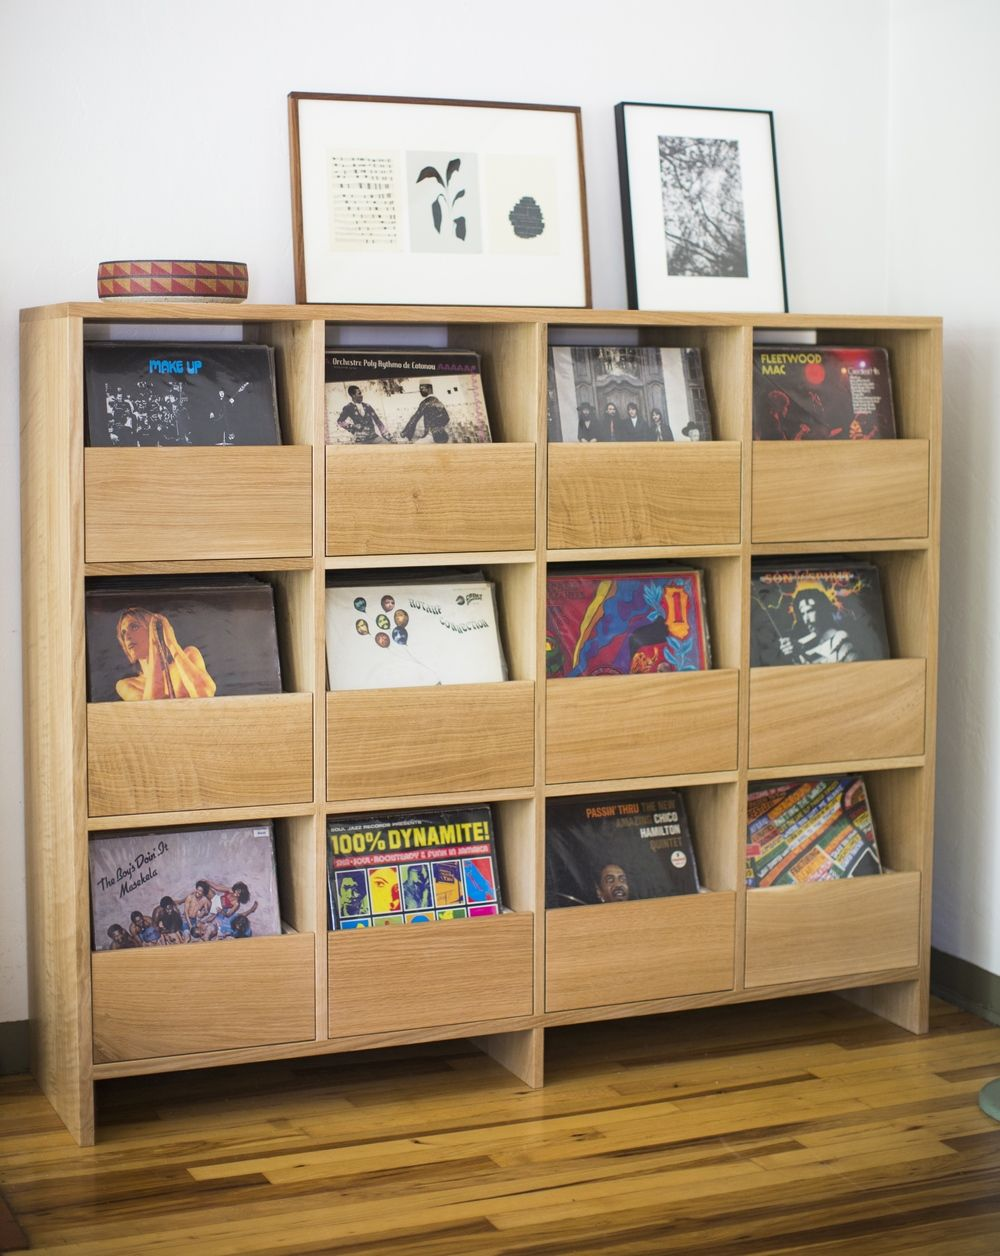 vinyl record furniture. Simple And Classy Ways To Store Your Vinyl Record Collection Furniture